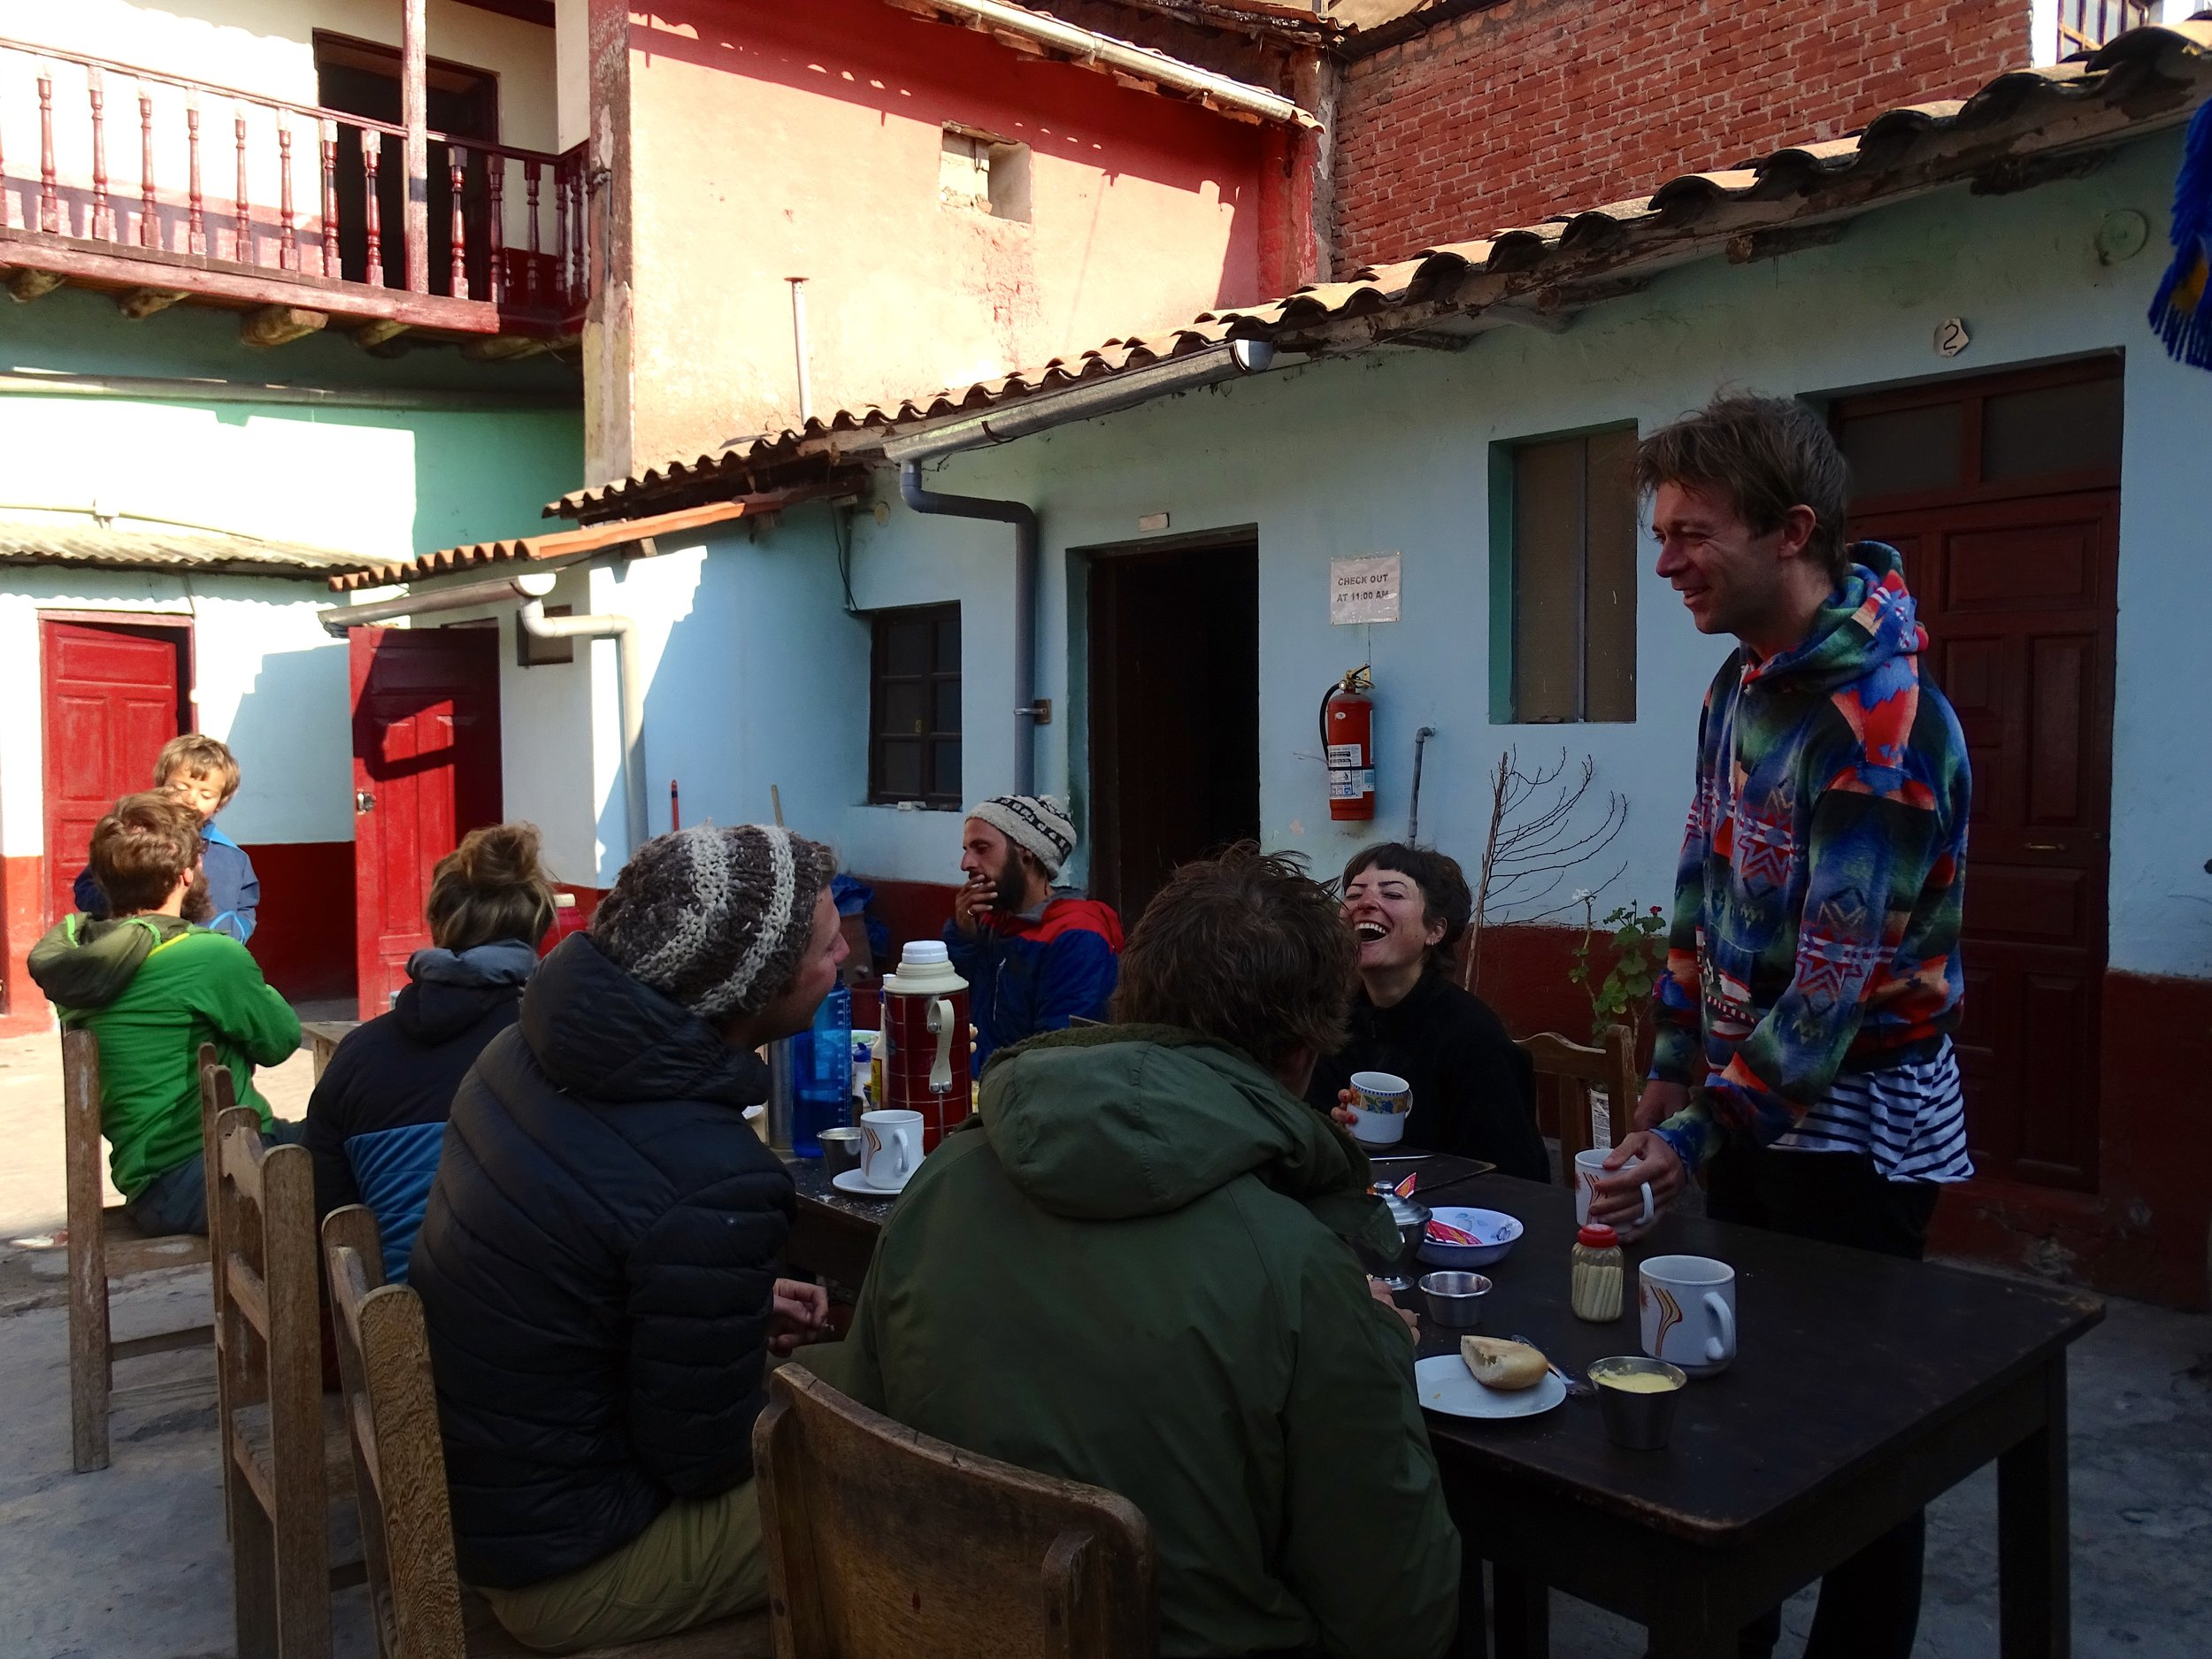 Breakfast at our hostel, where everyone gathered around the tables in the courtyard and enjoyed the morning sun (once it got there).